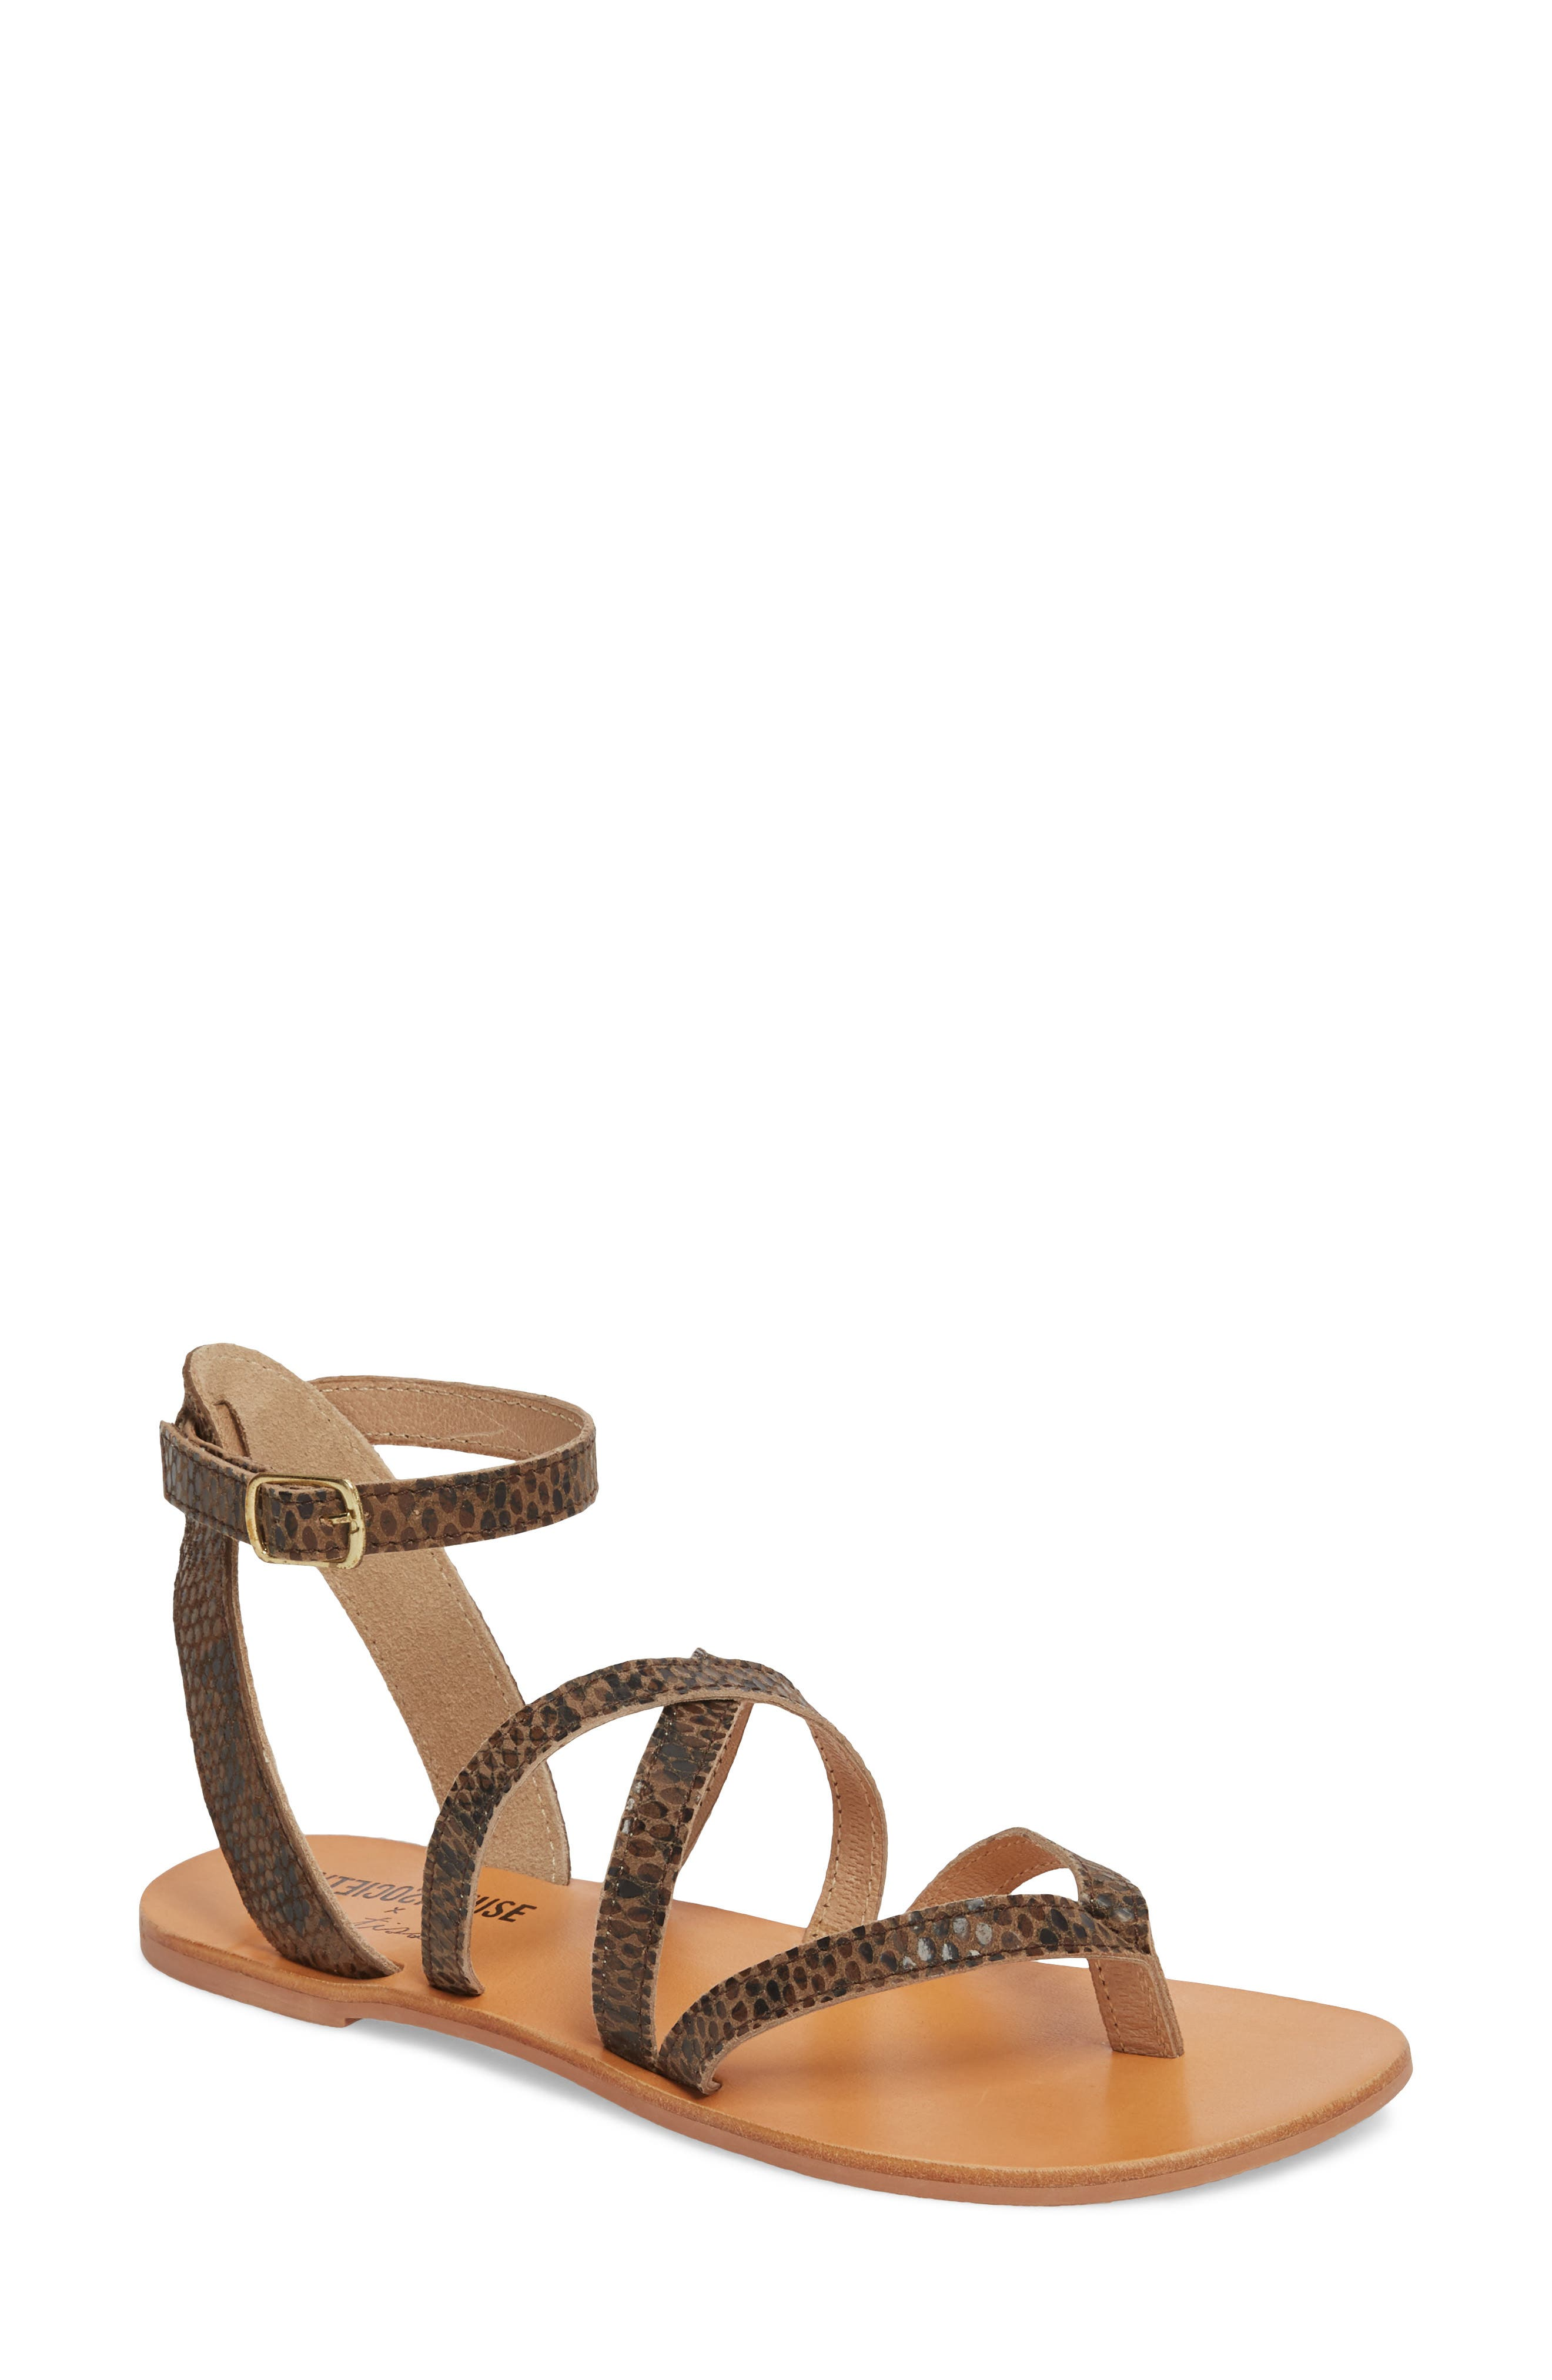 Strappy Sandal,                             Main thumbnail 1, color,                             Brown Snake Leather